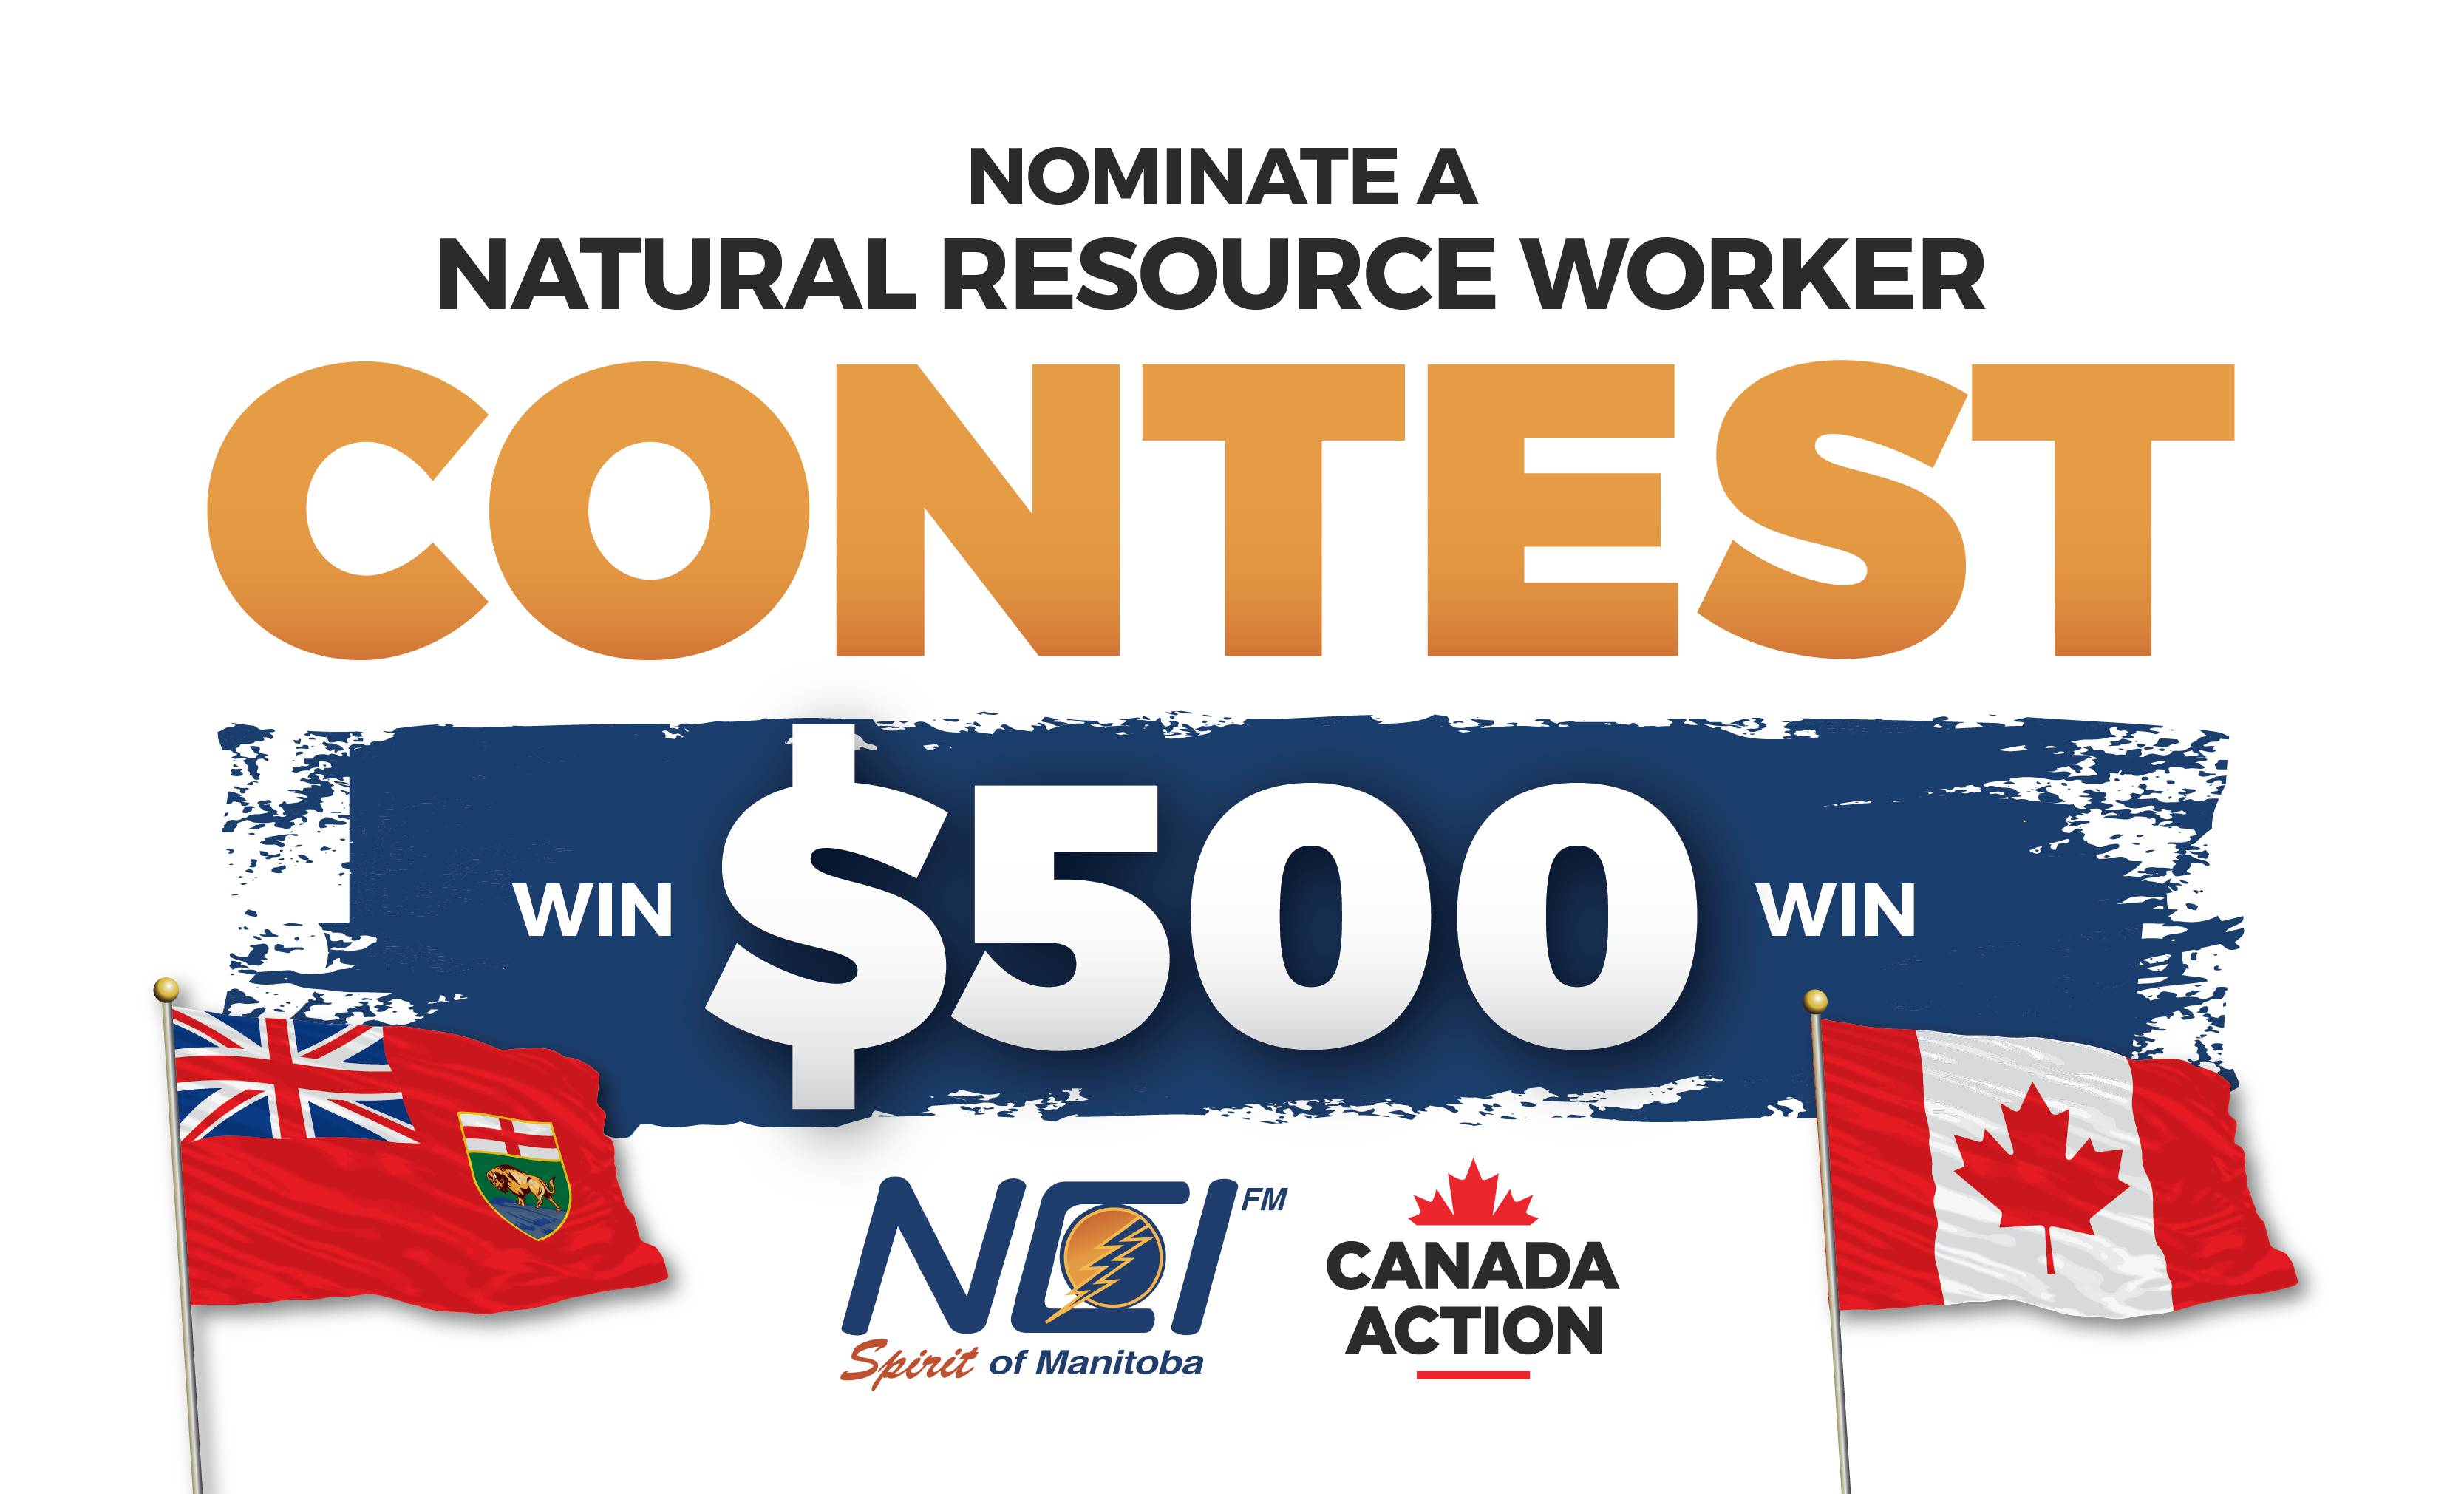 Image: WIN $500! - Nominate a Natural Resource Worker in Manitoba Contest - NCI FM